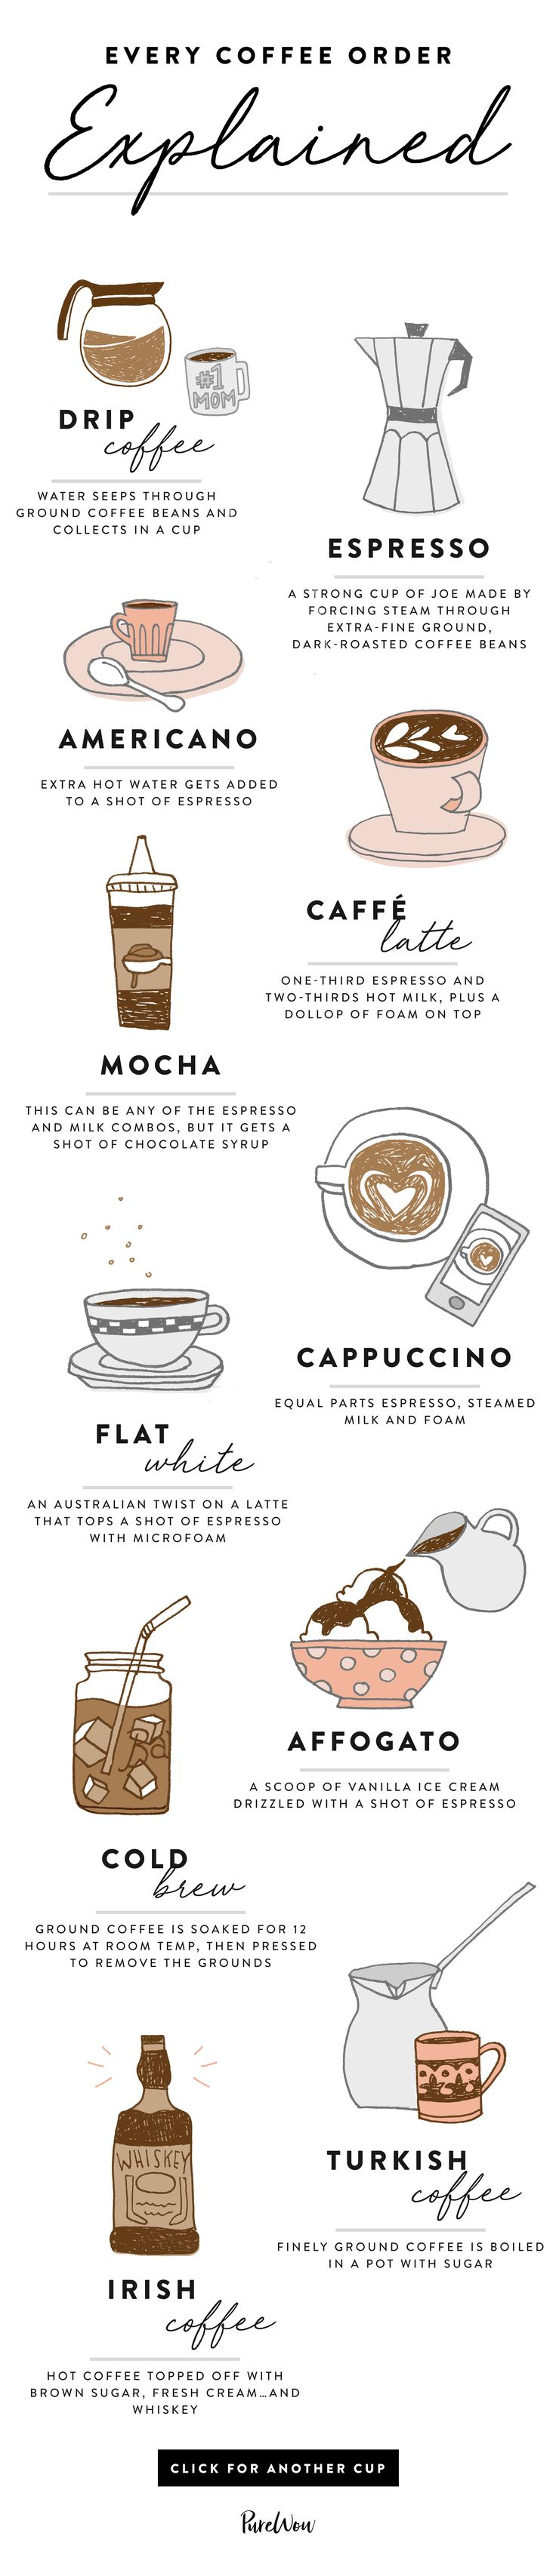 From cappuccinos to cold brew, save this handy guide to every coffee order and find your new fave.